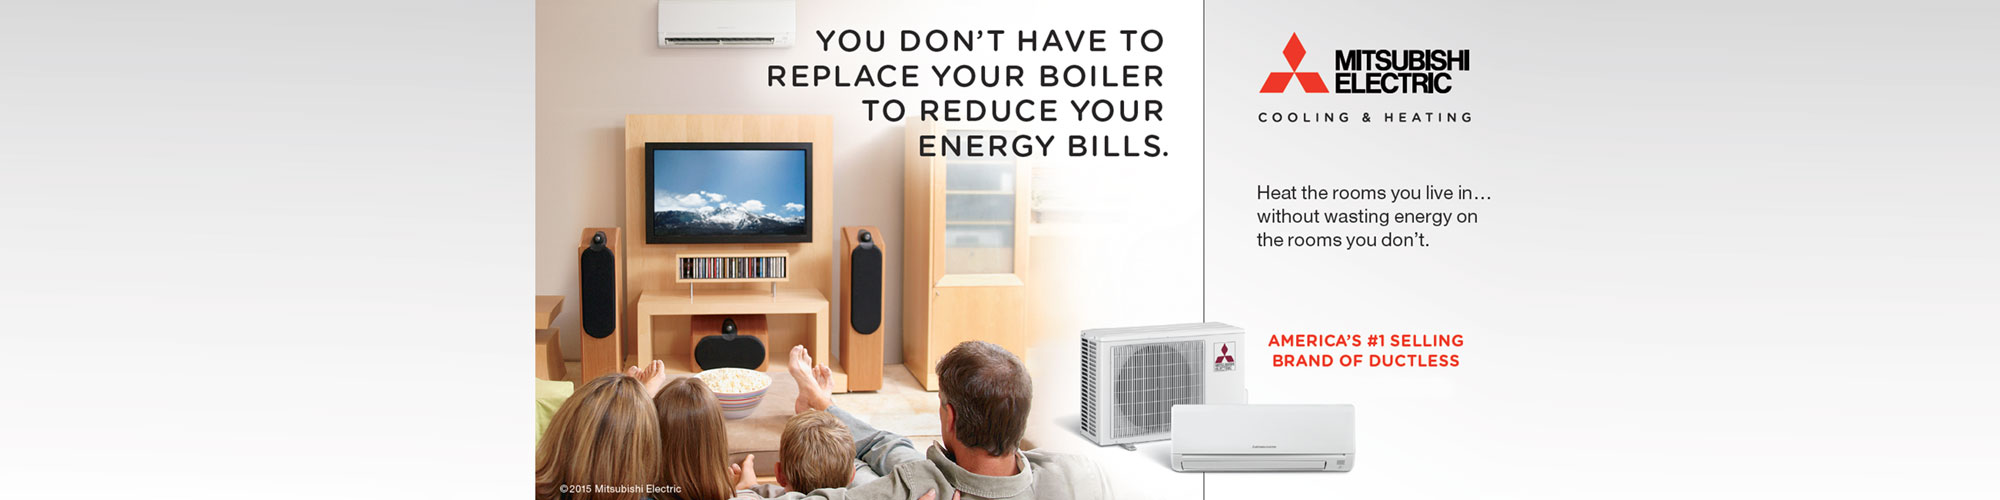 Mitsubishi Ductless Heating System